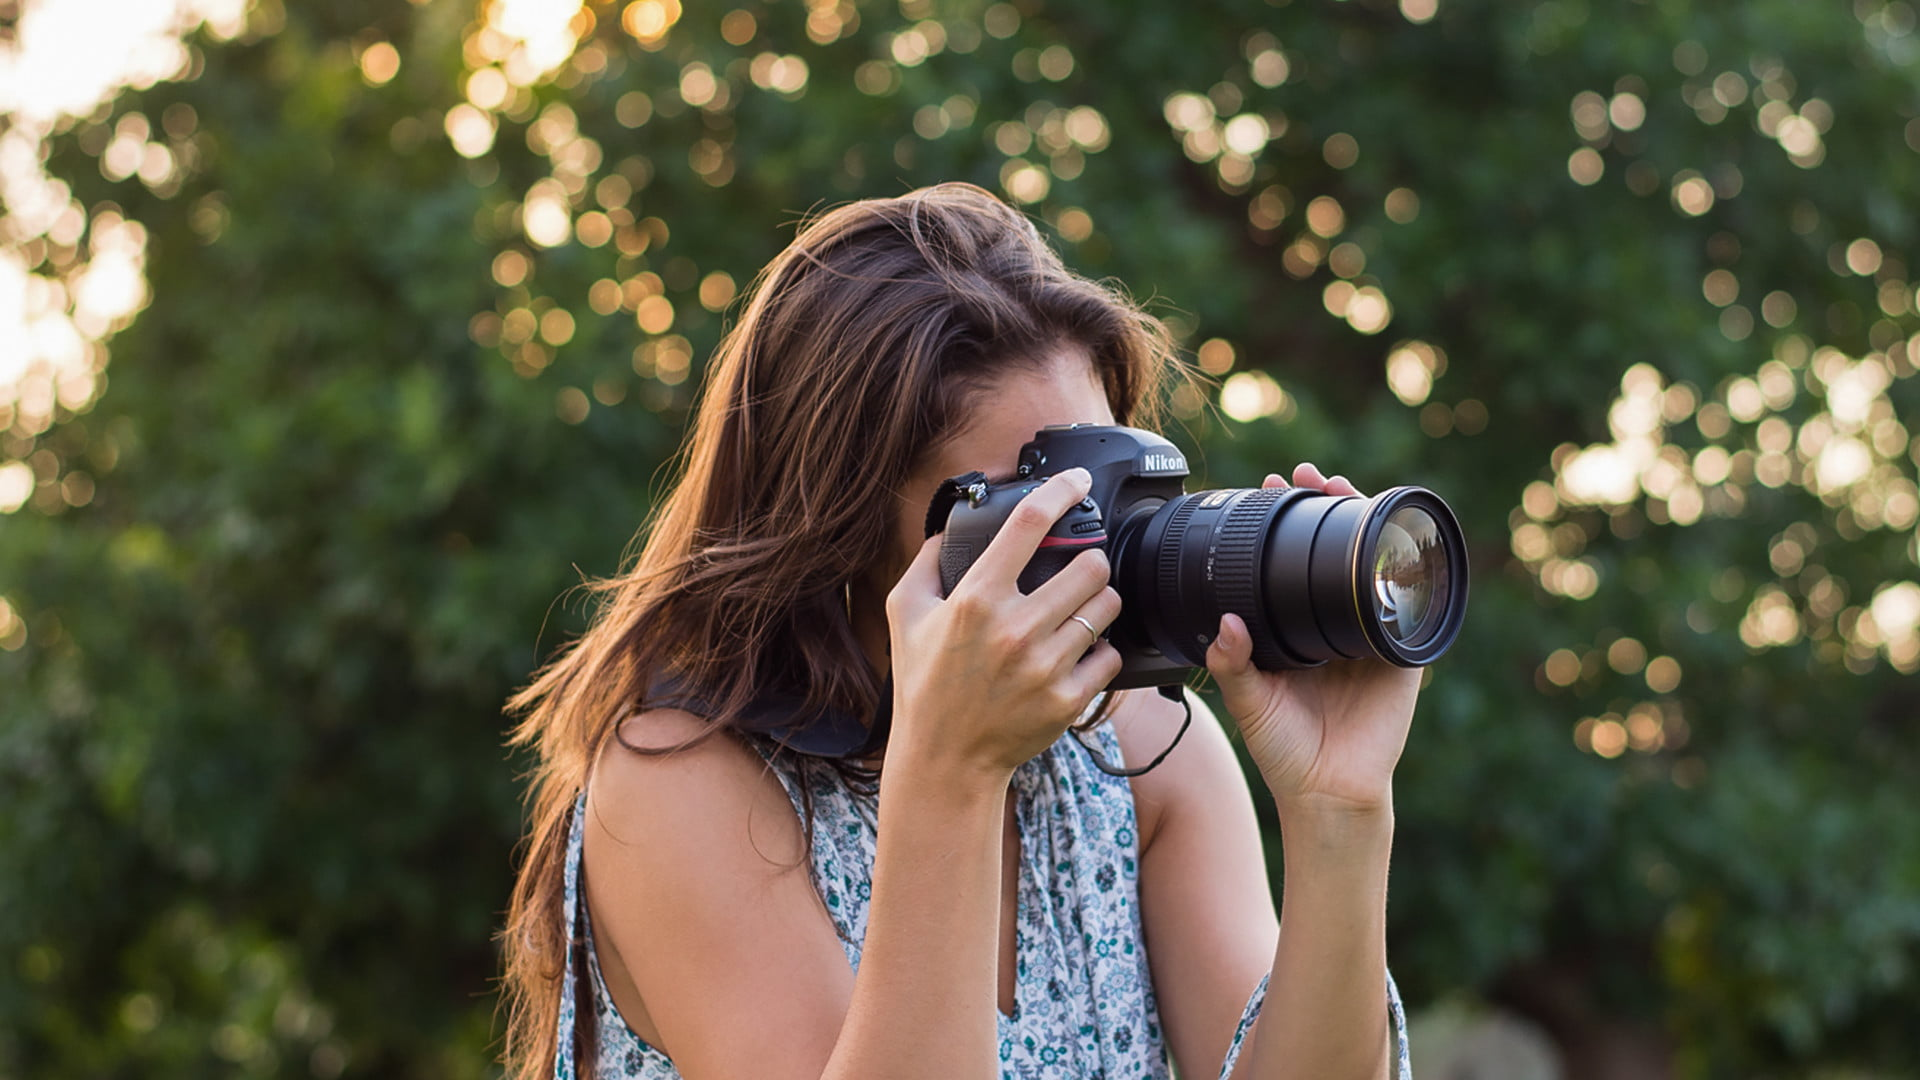 Several tips in choosing the right DSLR camera